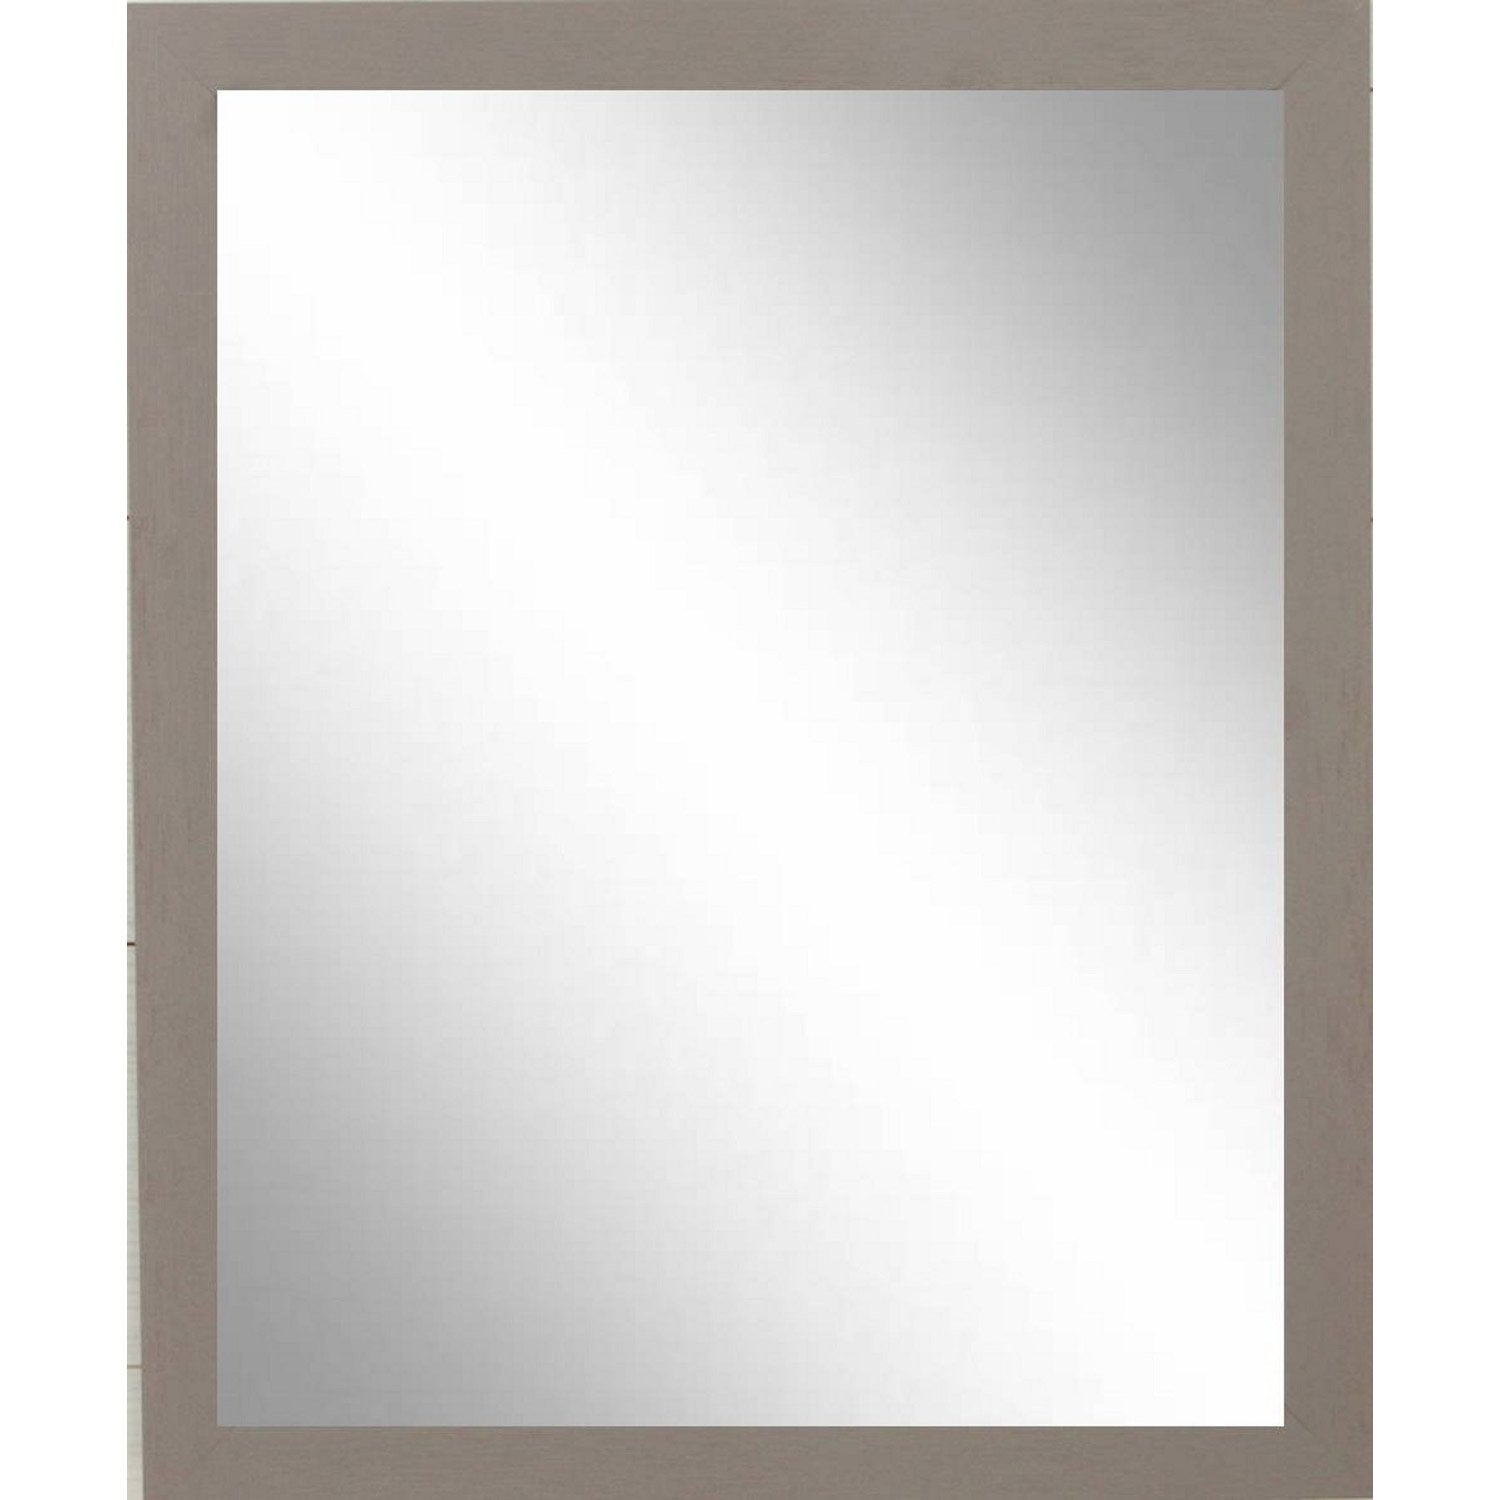 Miroir riviera inspire brun x cm leroy merlin for Outil miroir photoshop